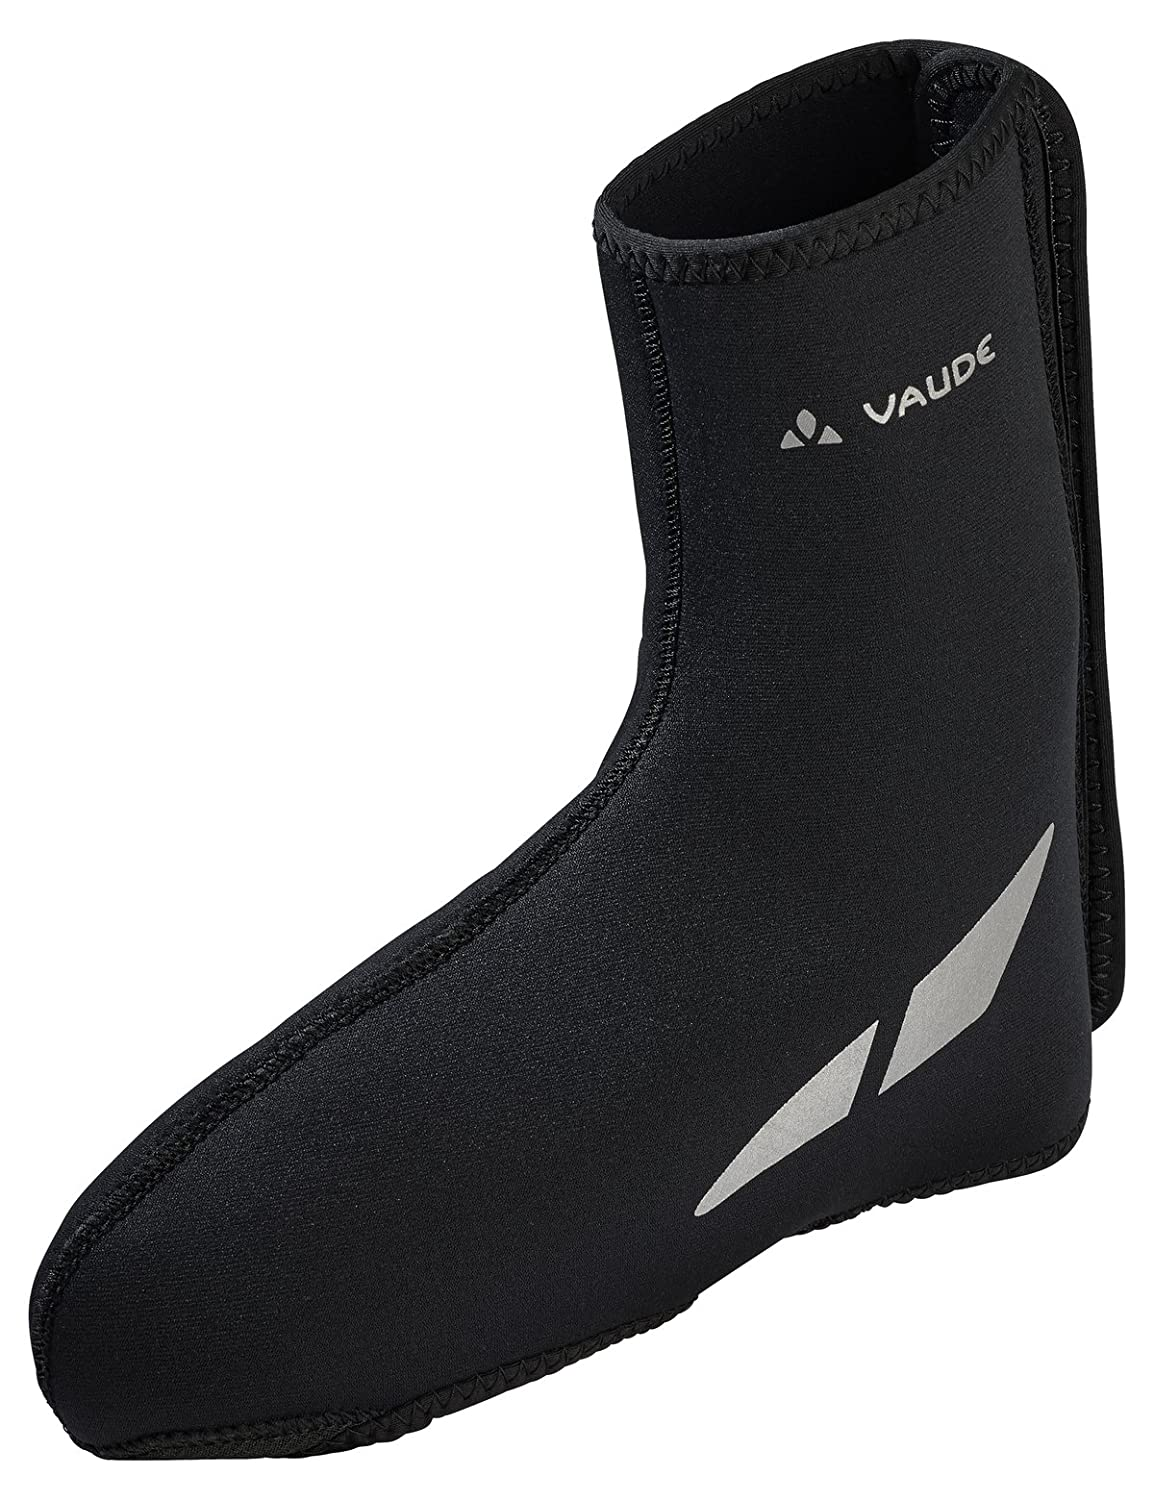 VAUDE Shoecover Pallas III - Manguitos color black, talla 4446